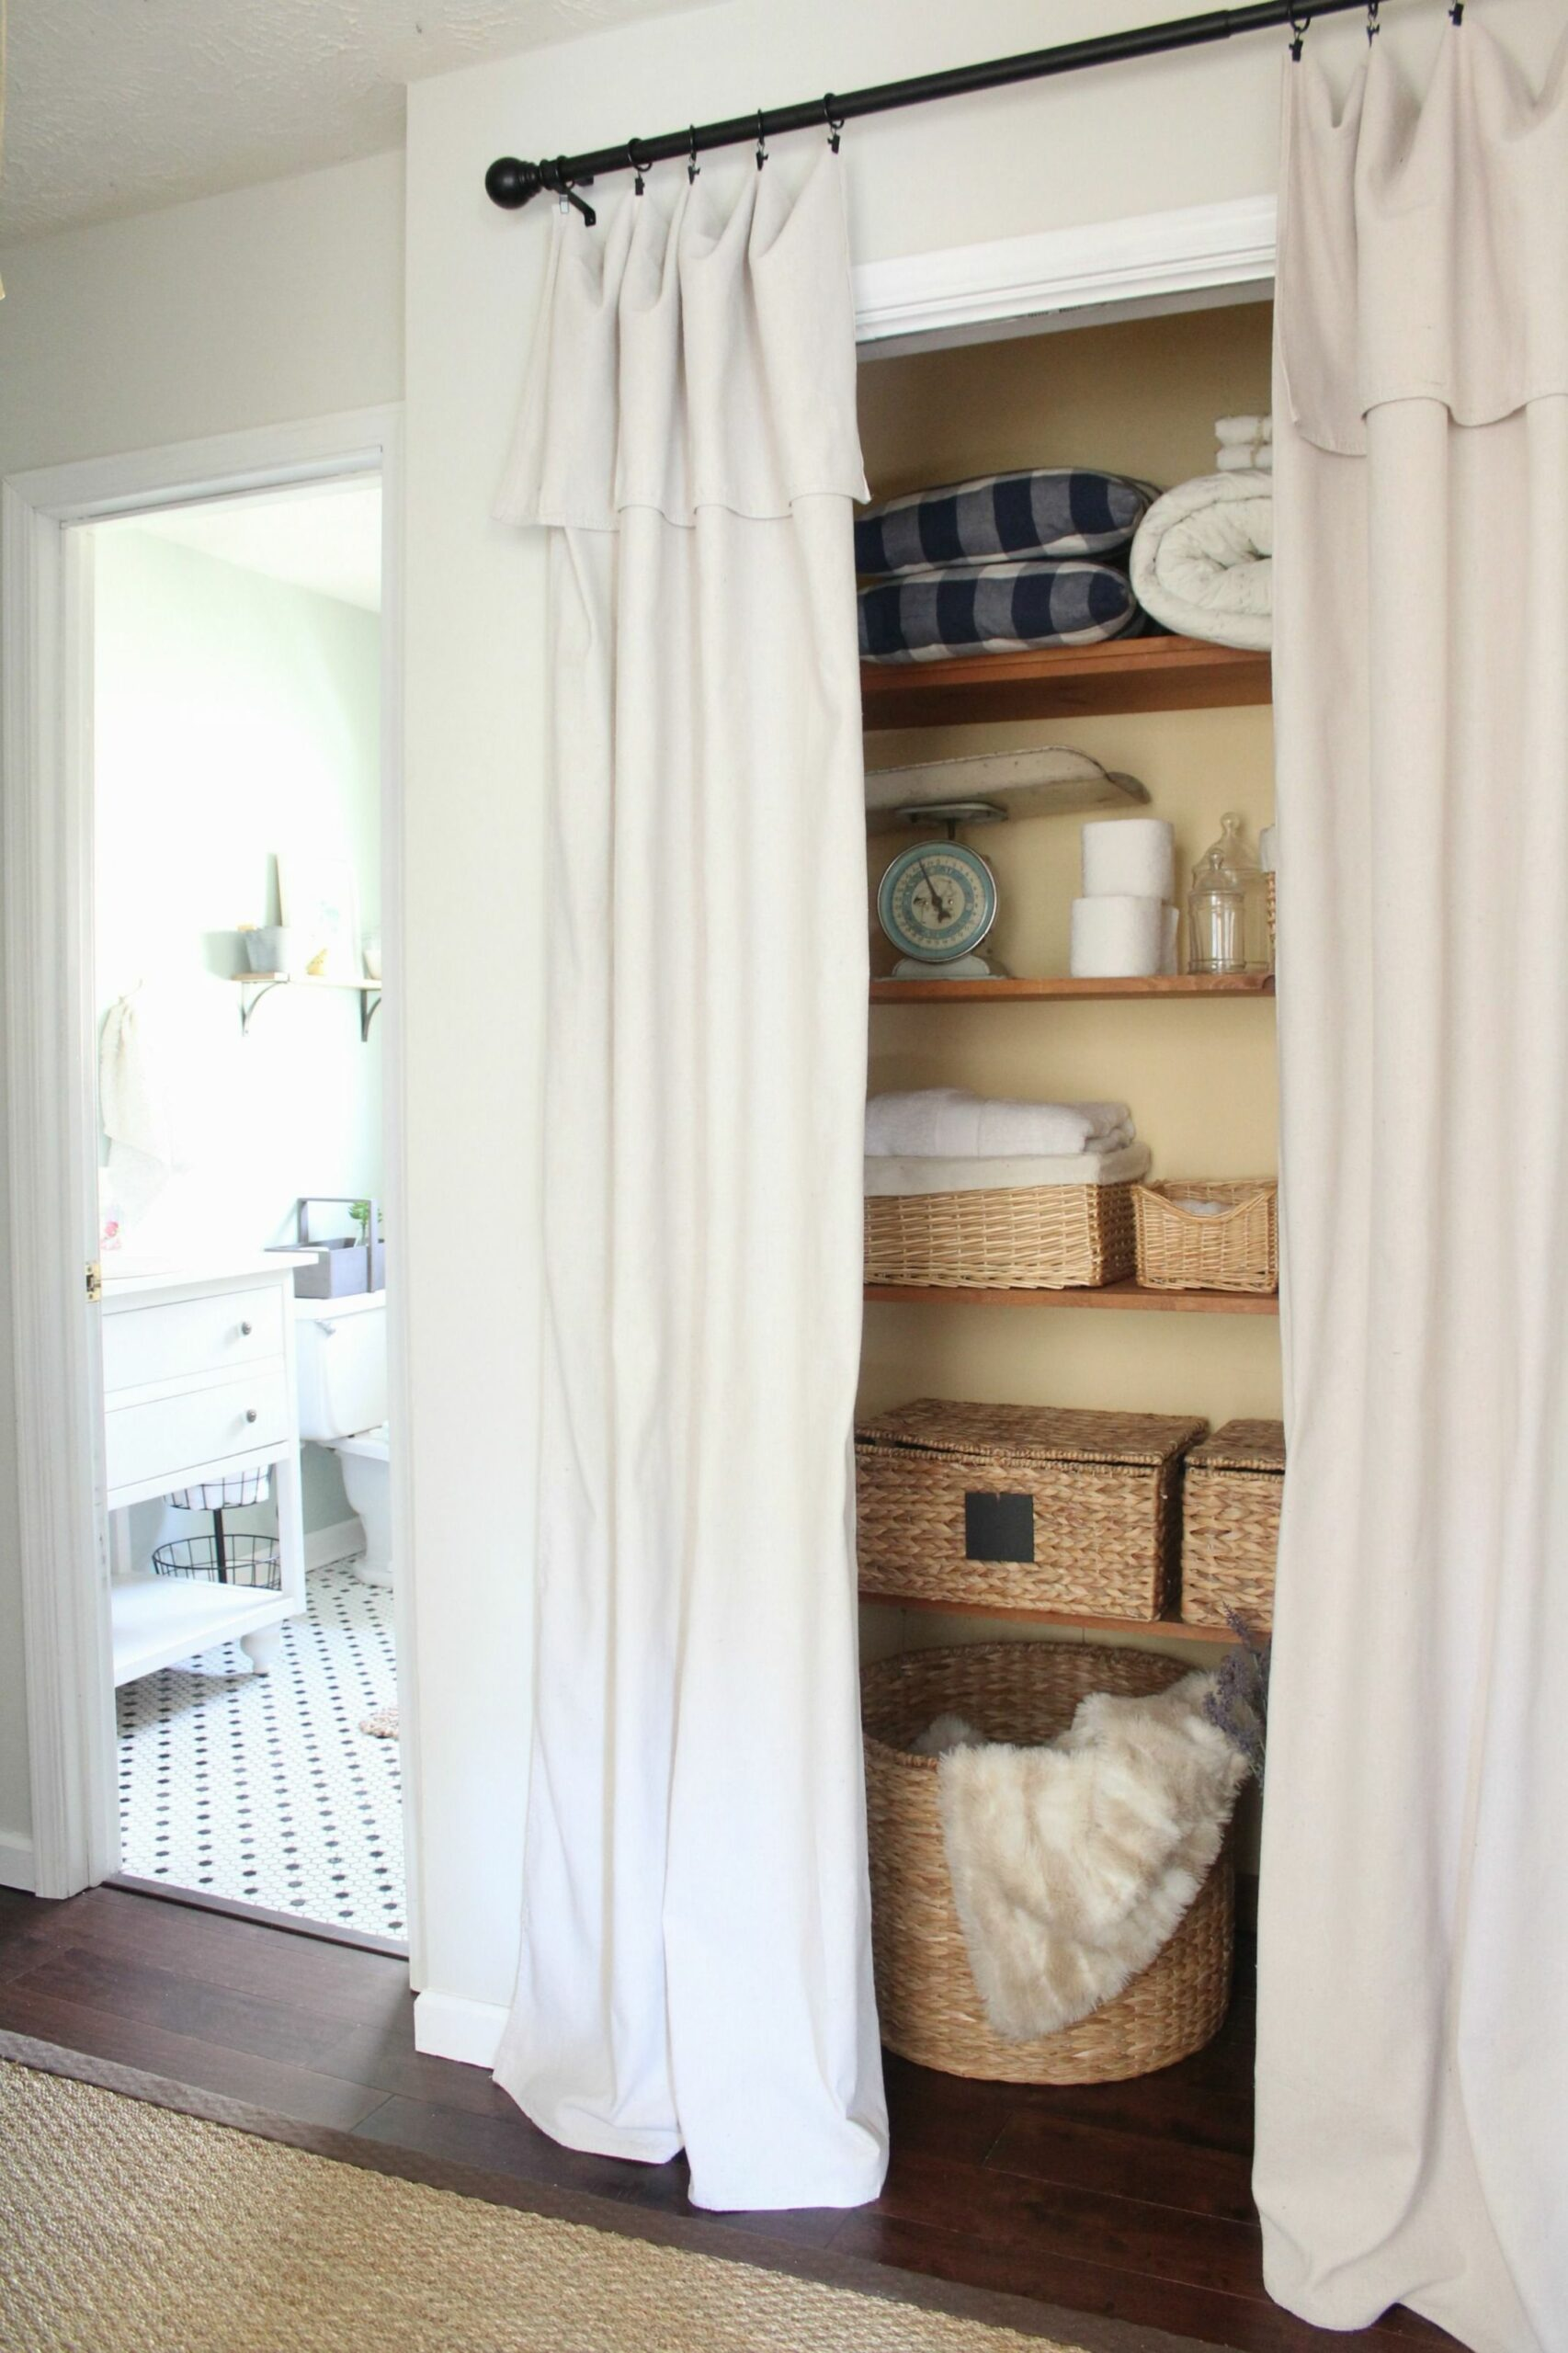 Create a New Look for Your Room with These Closet Door Ideas | Diy ...